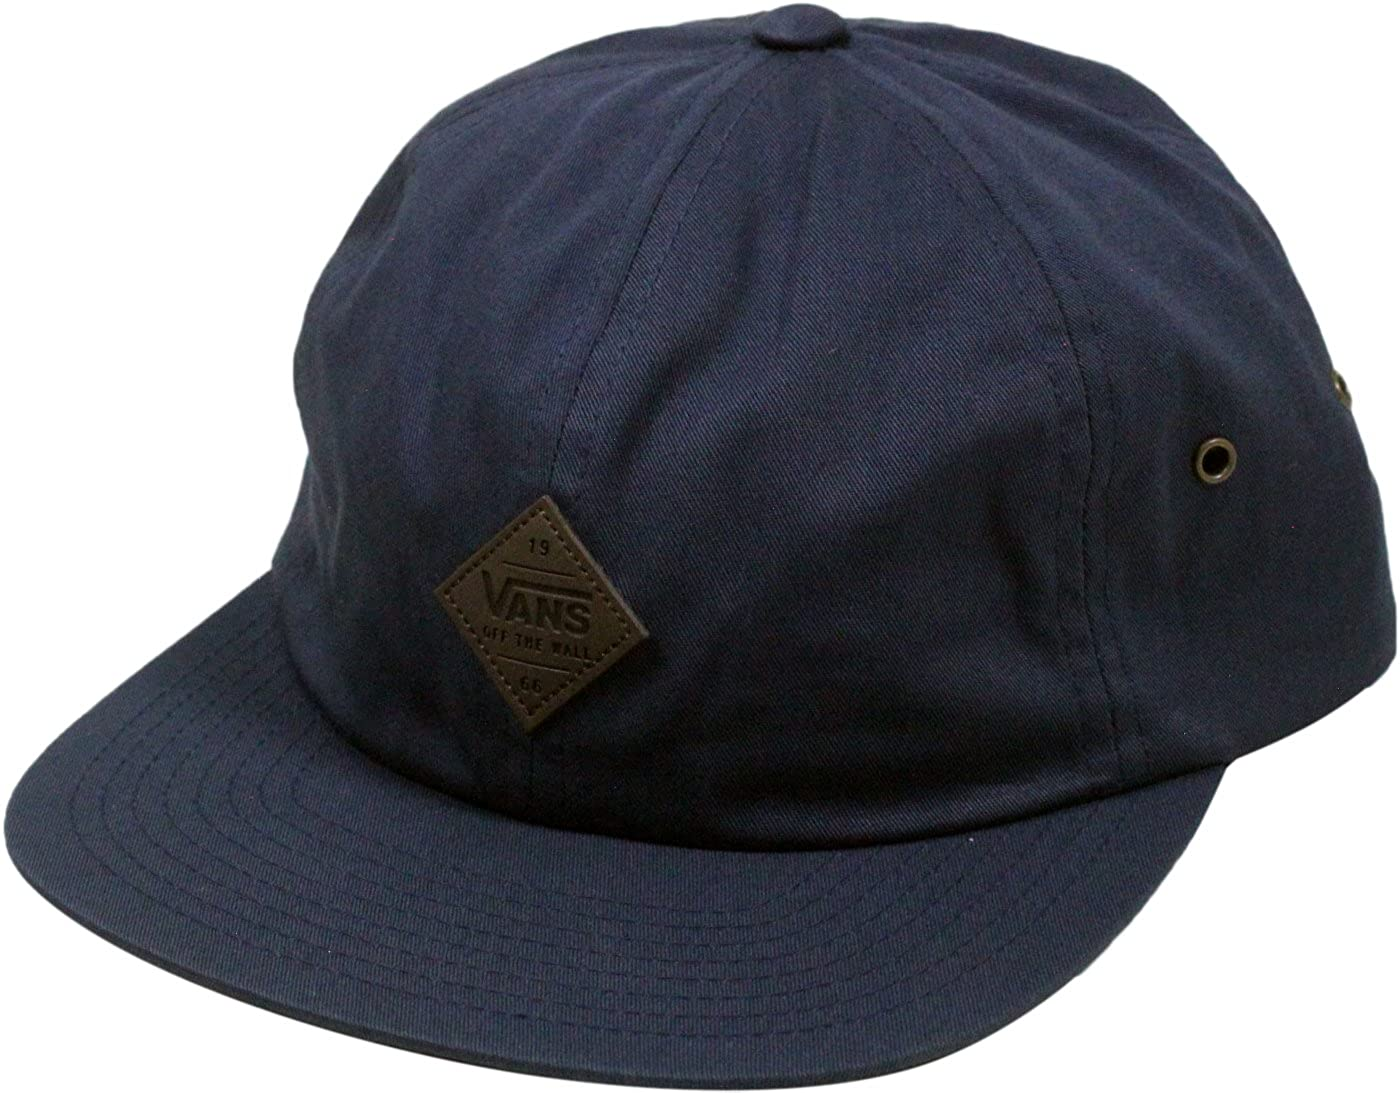 c61ae4e990d Vans Nesbitt Jockey Baseball Hat Dress Blues Mens One Size  Amazon.ca   Clothing   Accessories